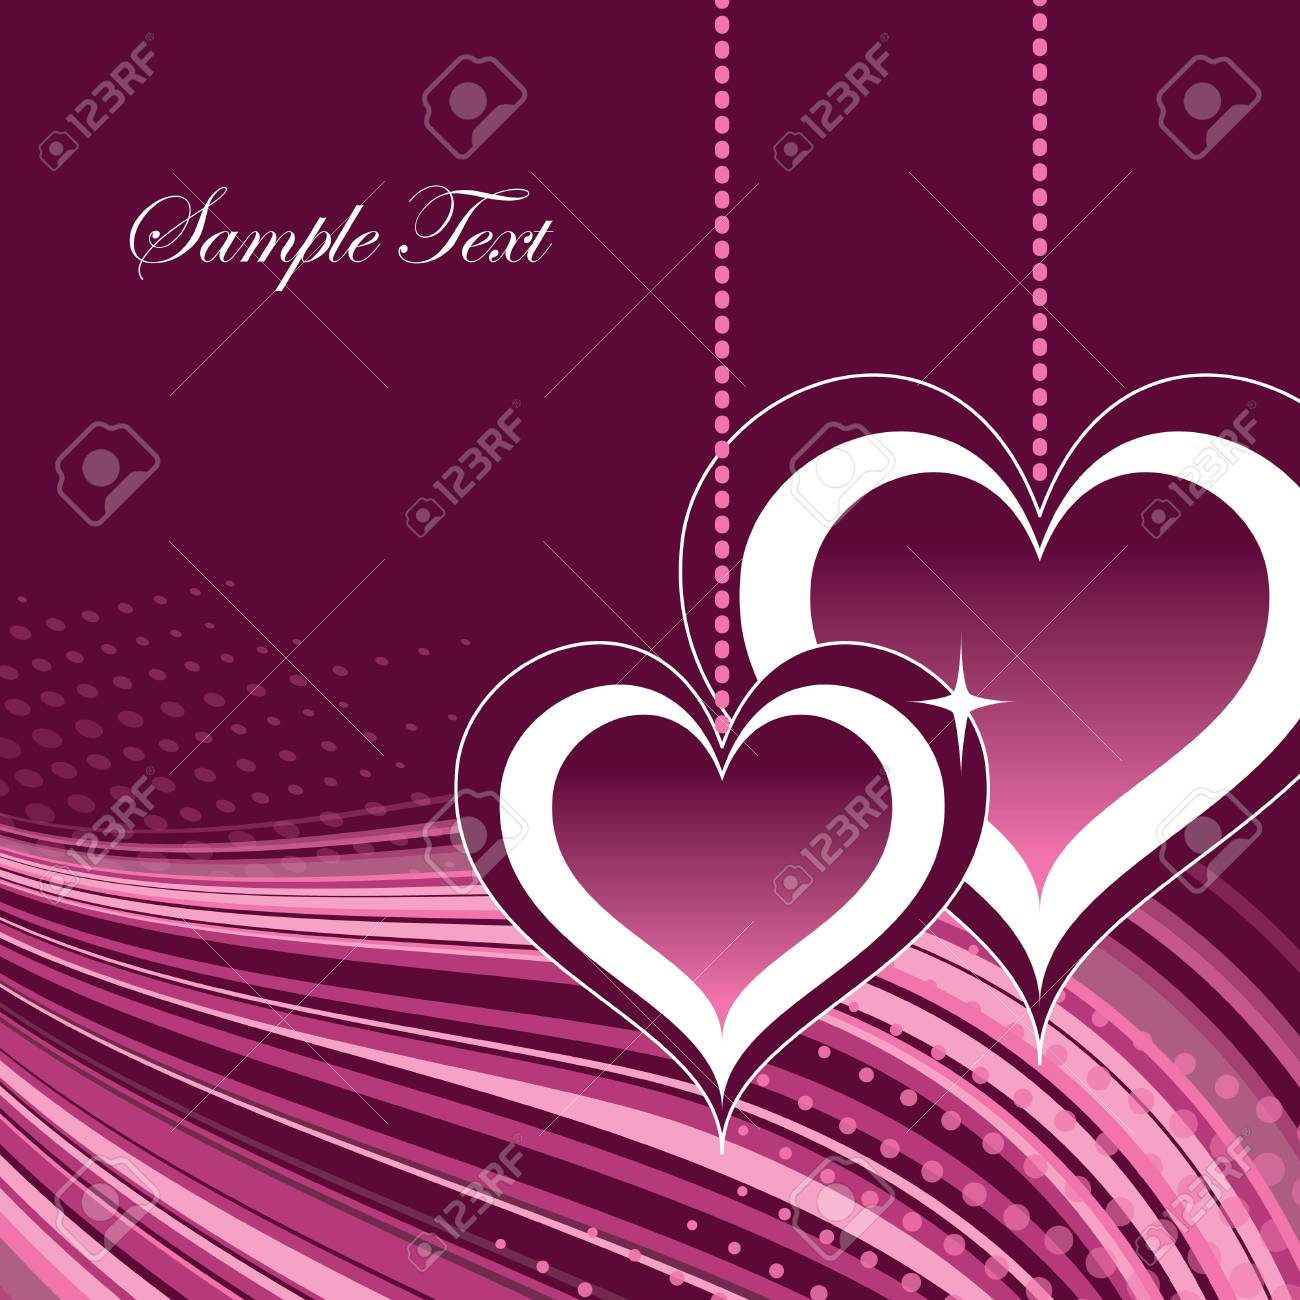 Valentines Day Background Stock Vector - 17619375